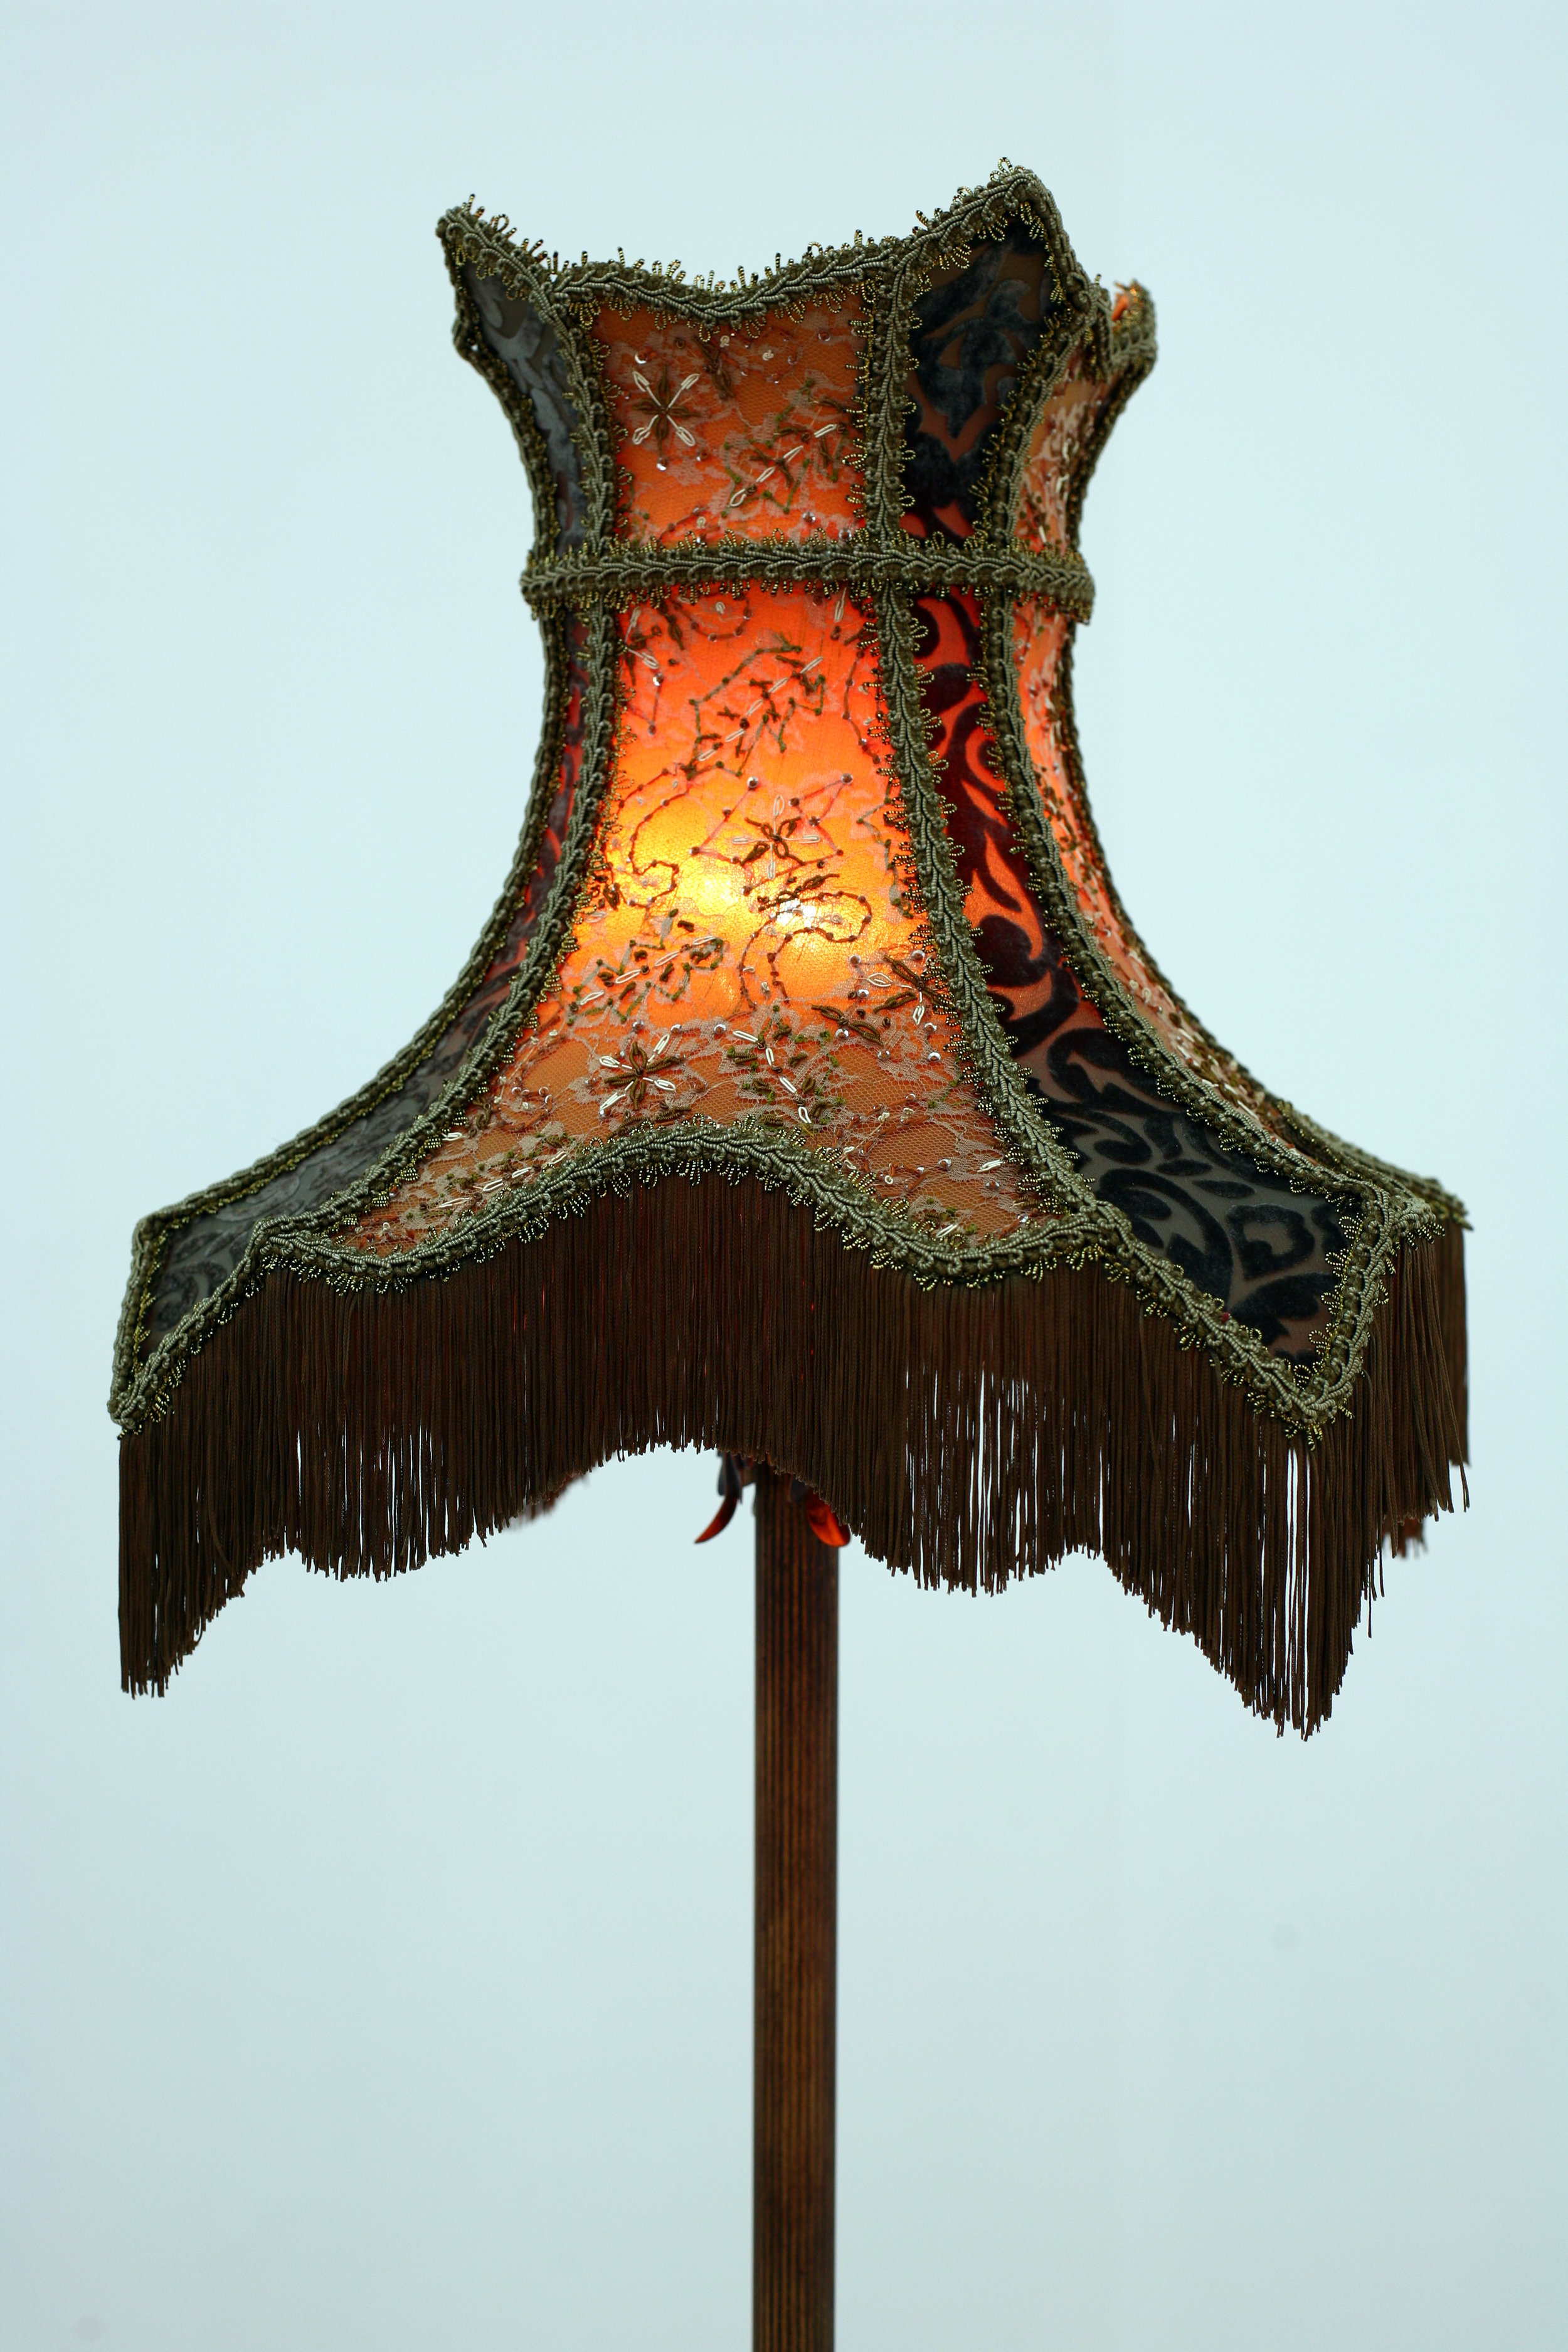 Uniquely shaped antique lamp with custom lamp shade